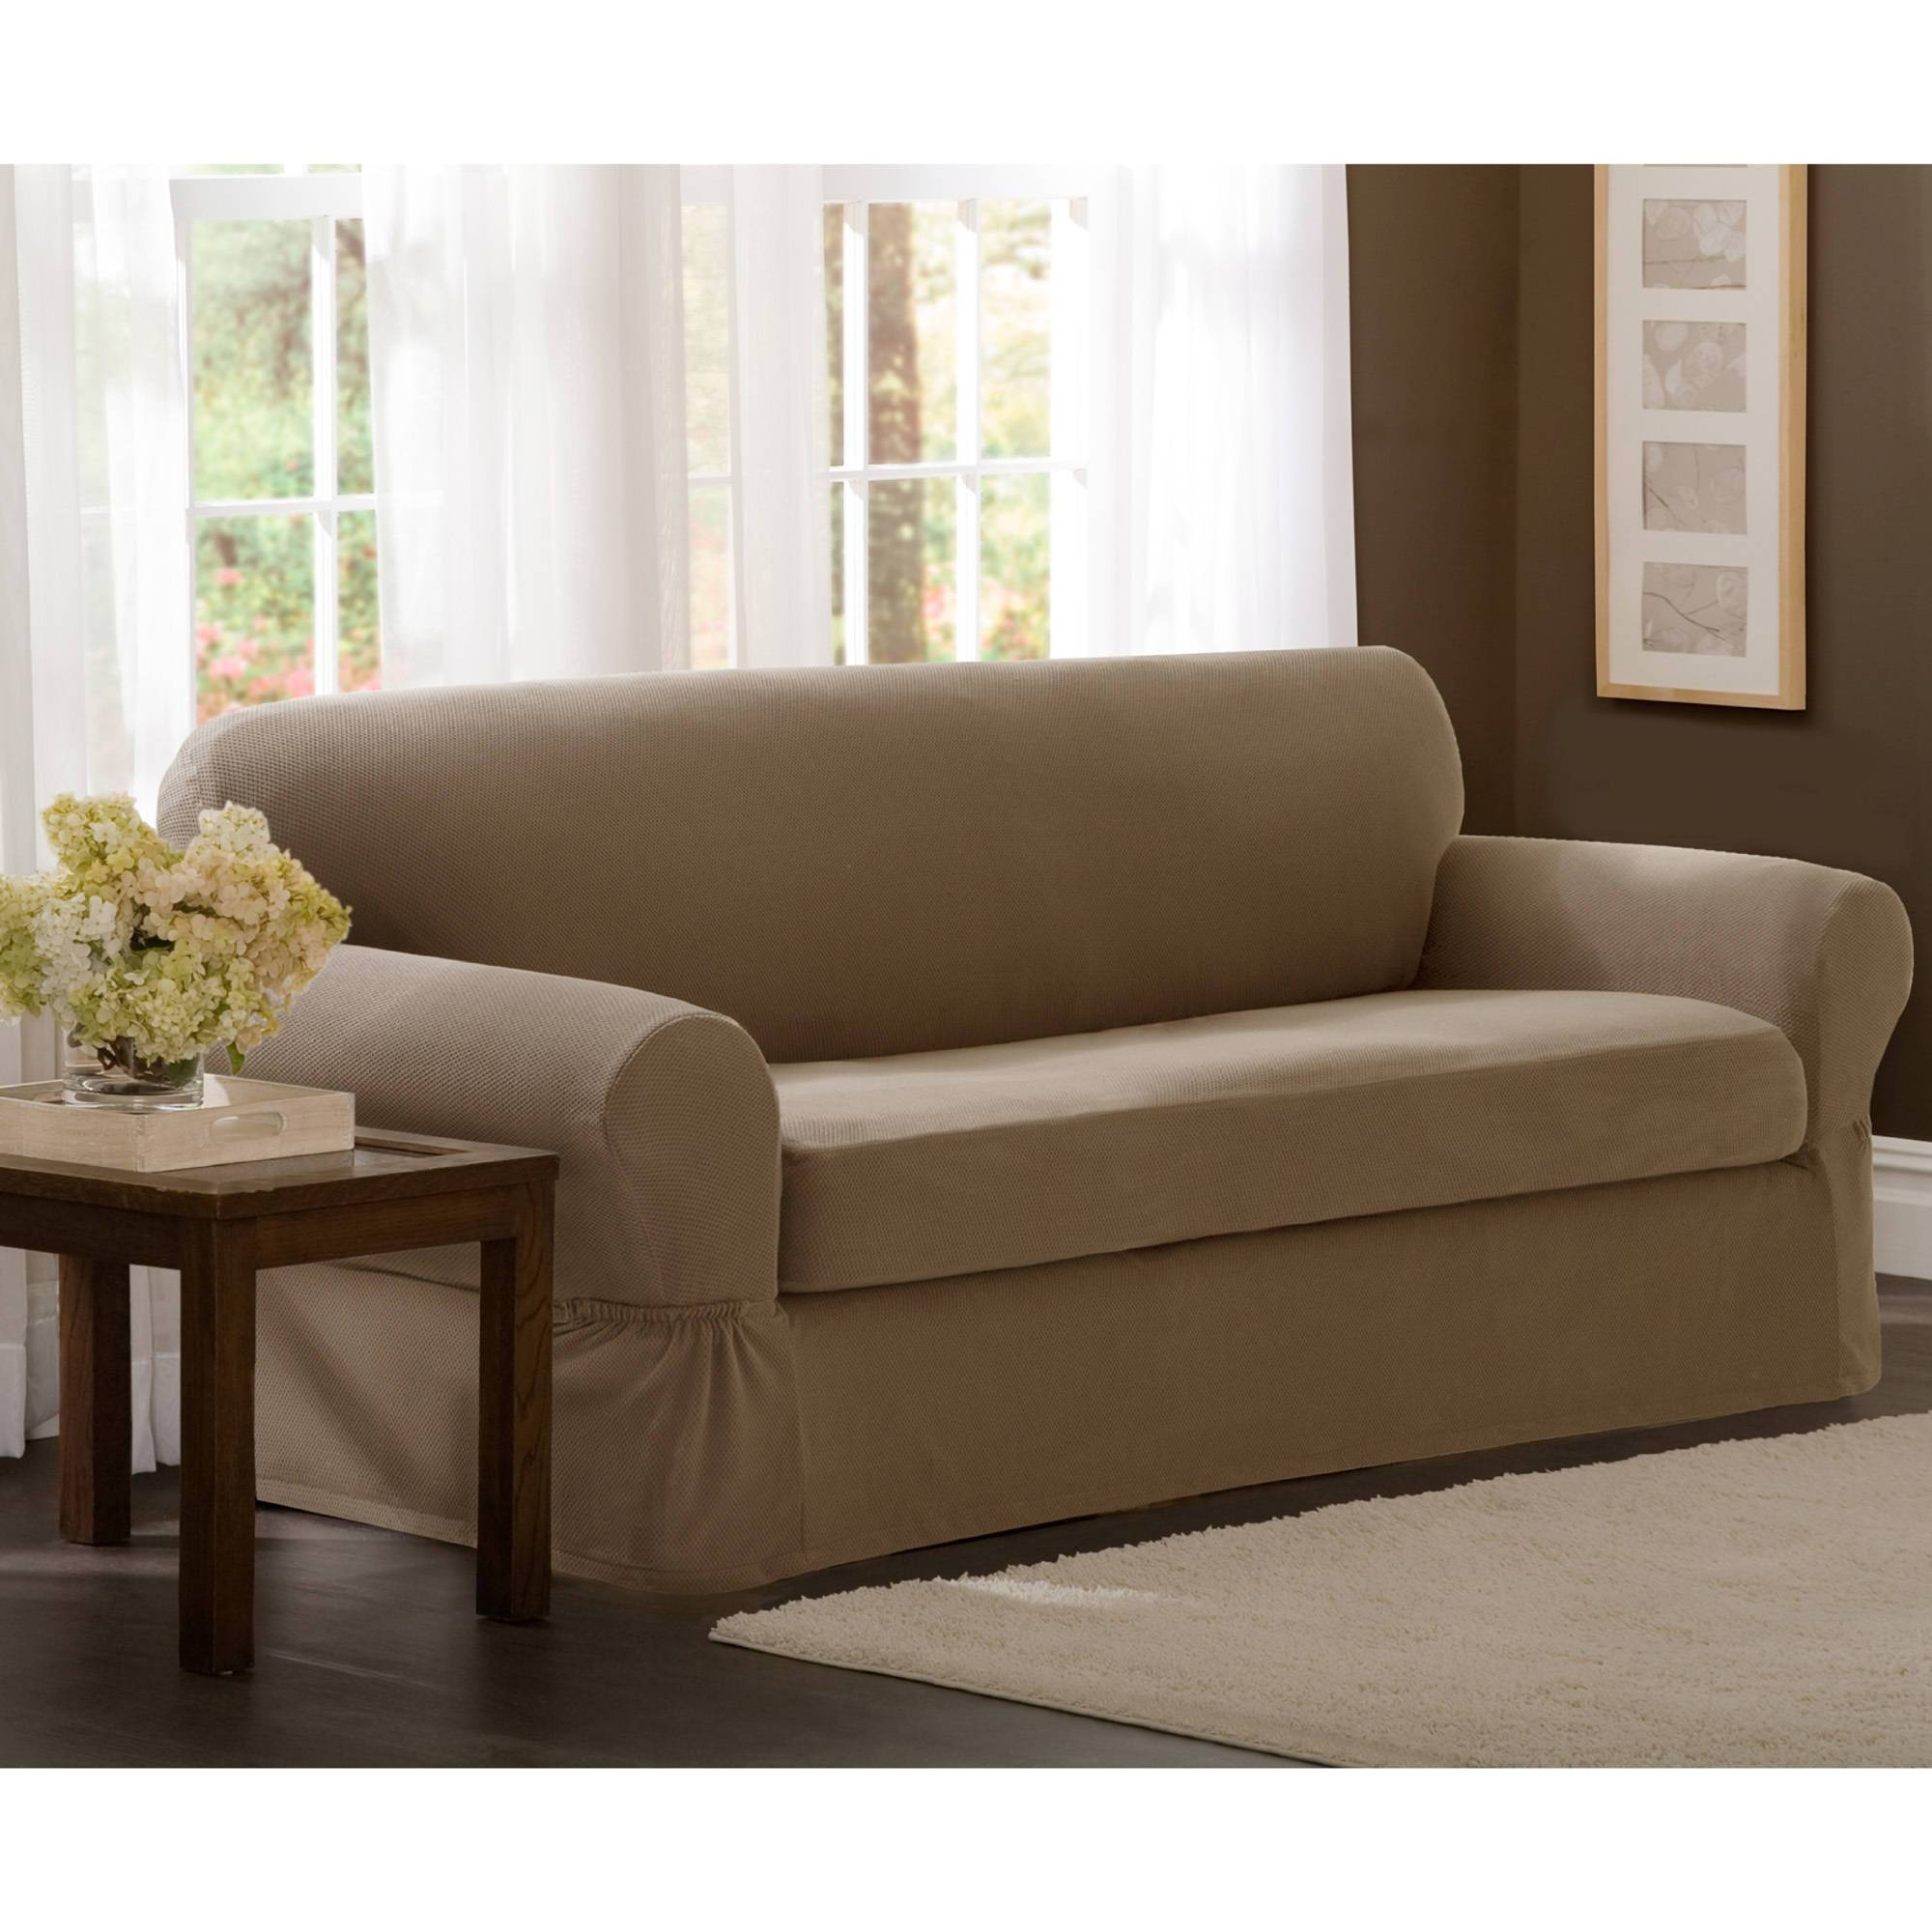 Maytex Stretch 2-Piece Sofa Slipcover - Walmart intended for 2 Piece Sofa Covers (Image 17 of 30)